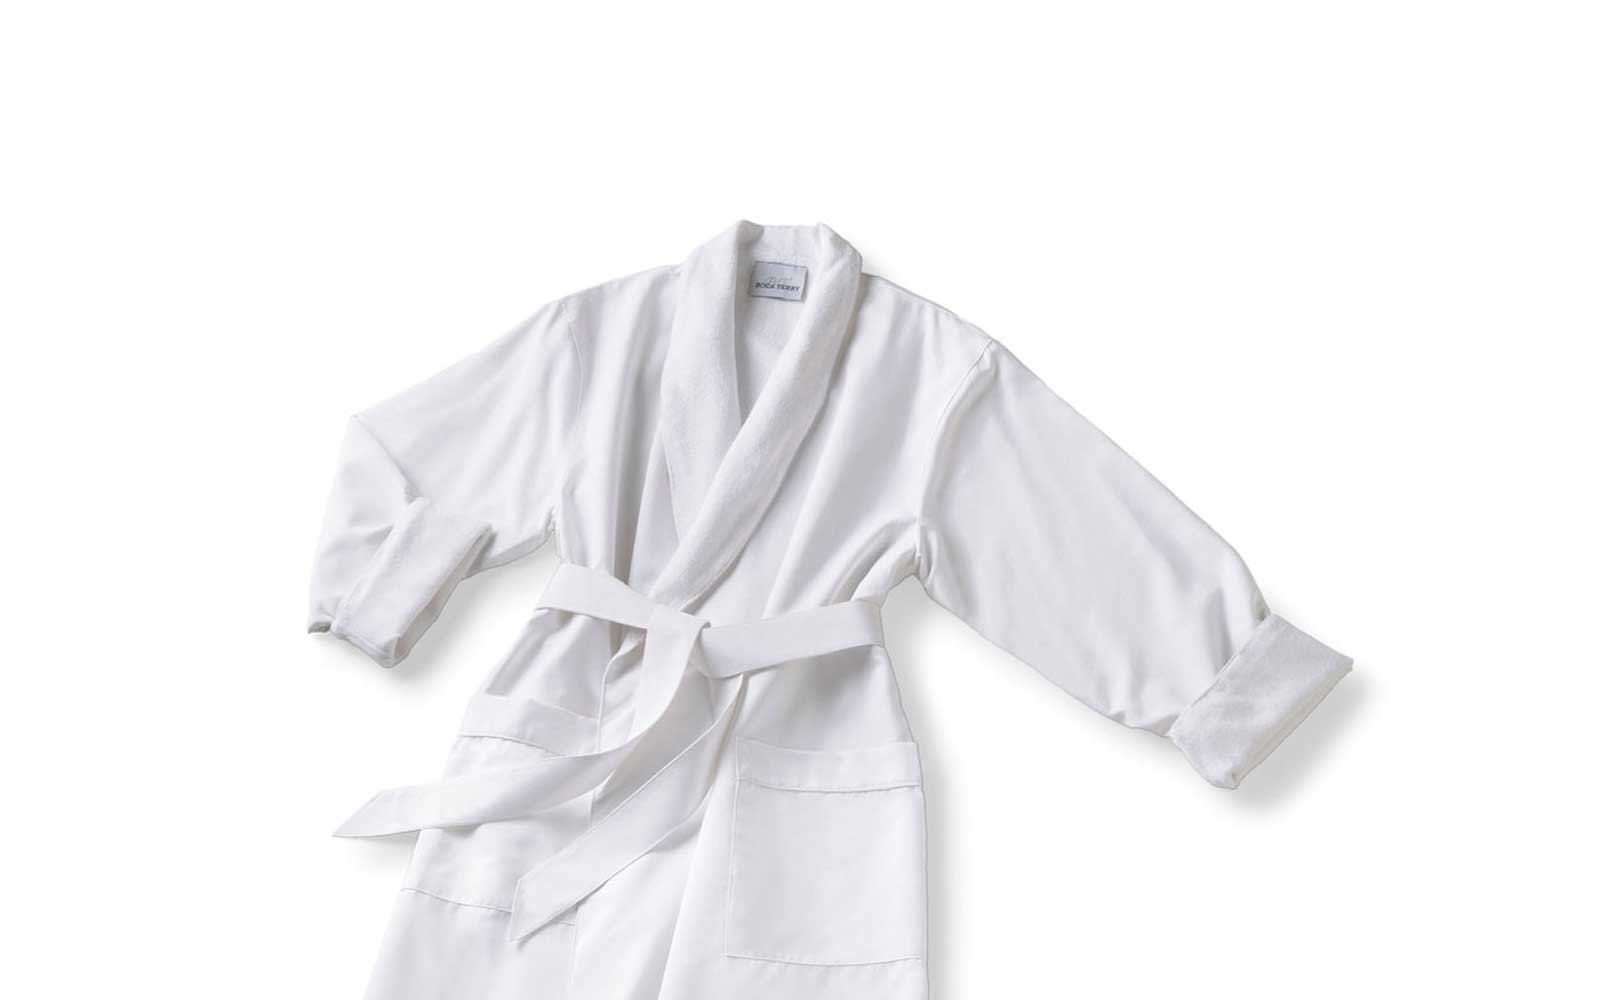 ea920a4429 14 Luxury Hotel-quality Bathrobes You Can Buy Online